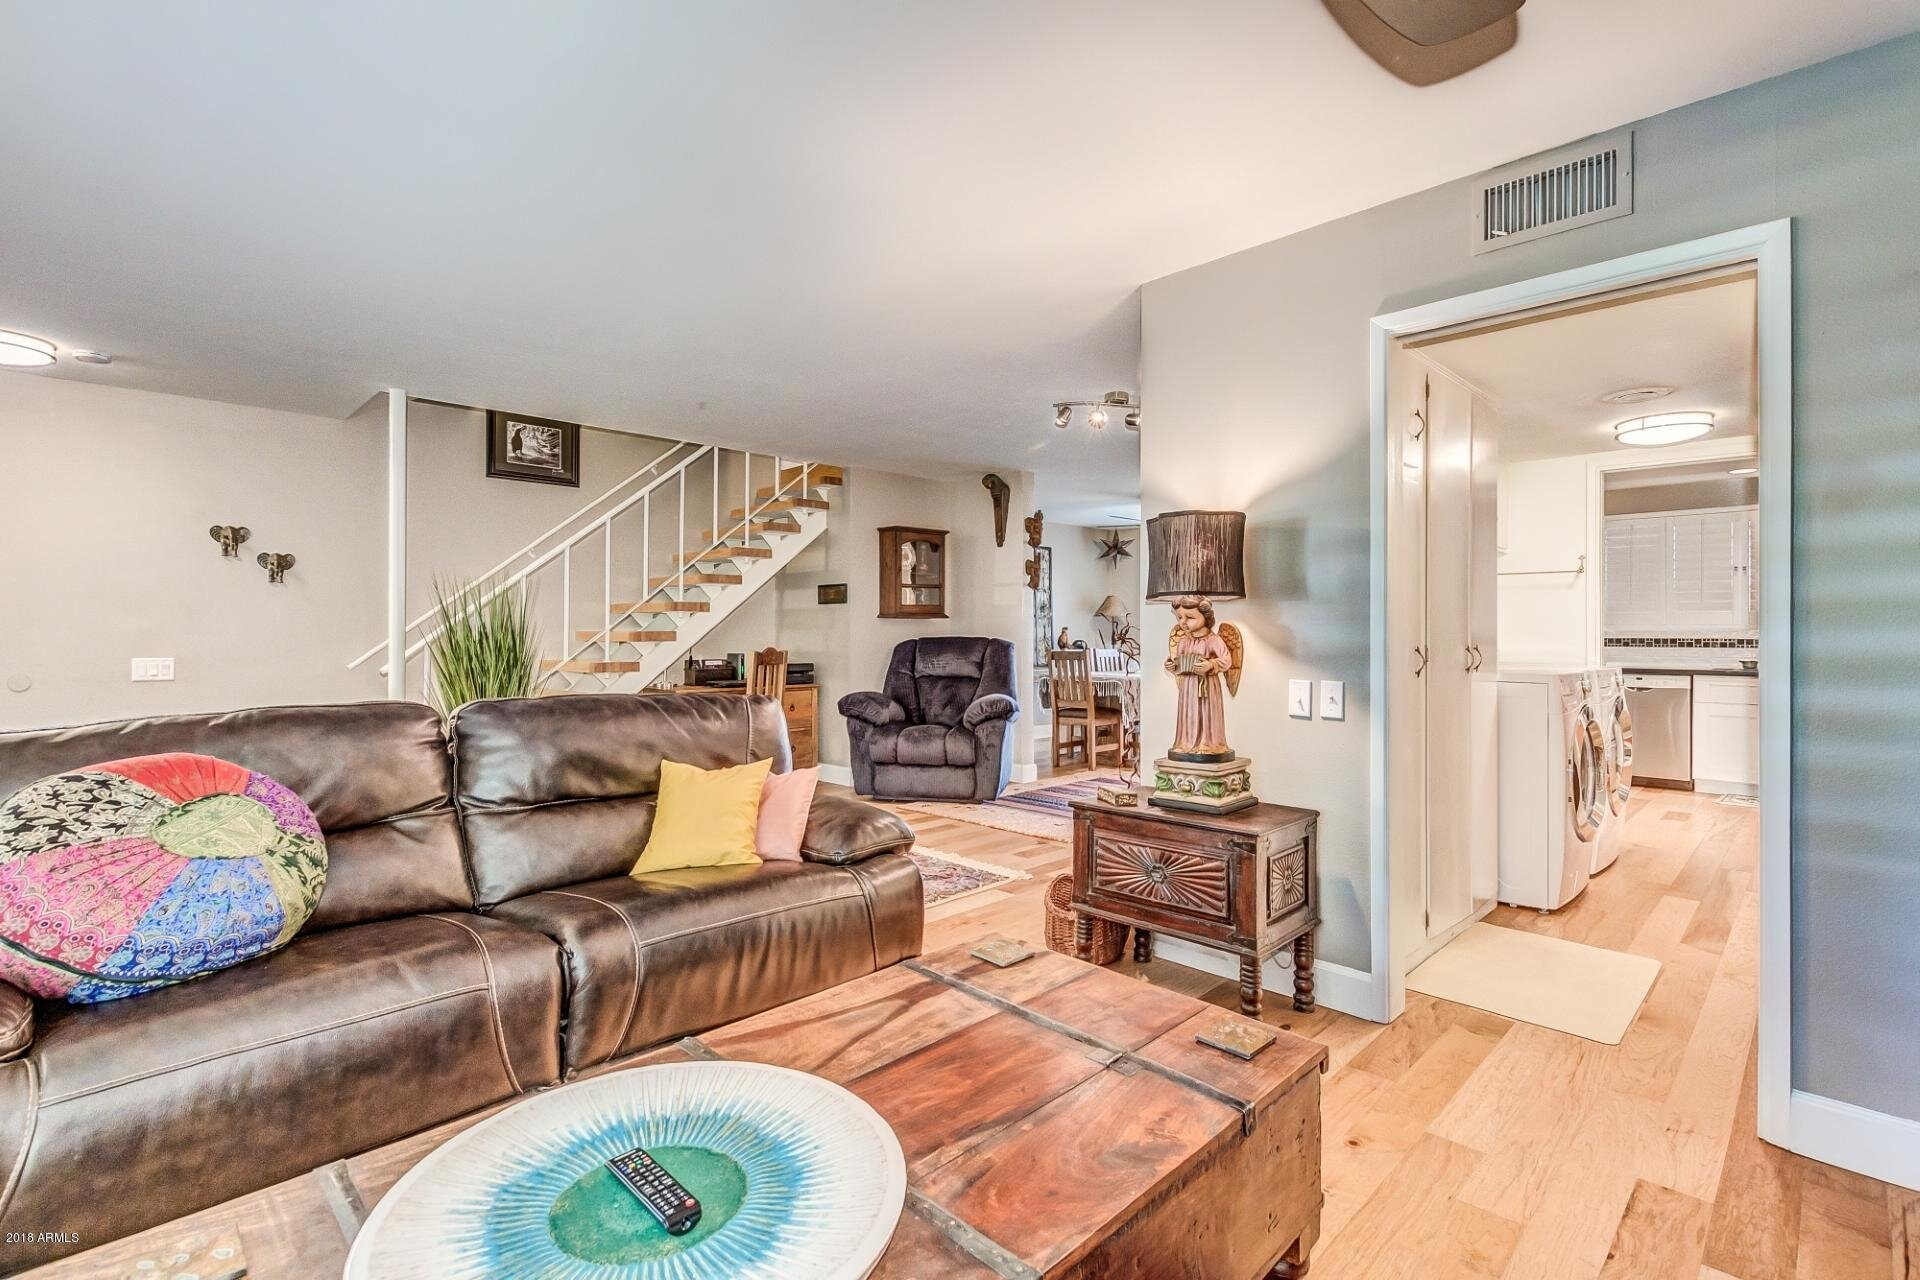 500 w. clarendon - Built in 1962 this location is in the heart of Phoenix. Easily walk to the light rail & easily get to shopping, restaurants & entertainment in Downtown Phoenix,